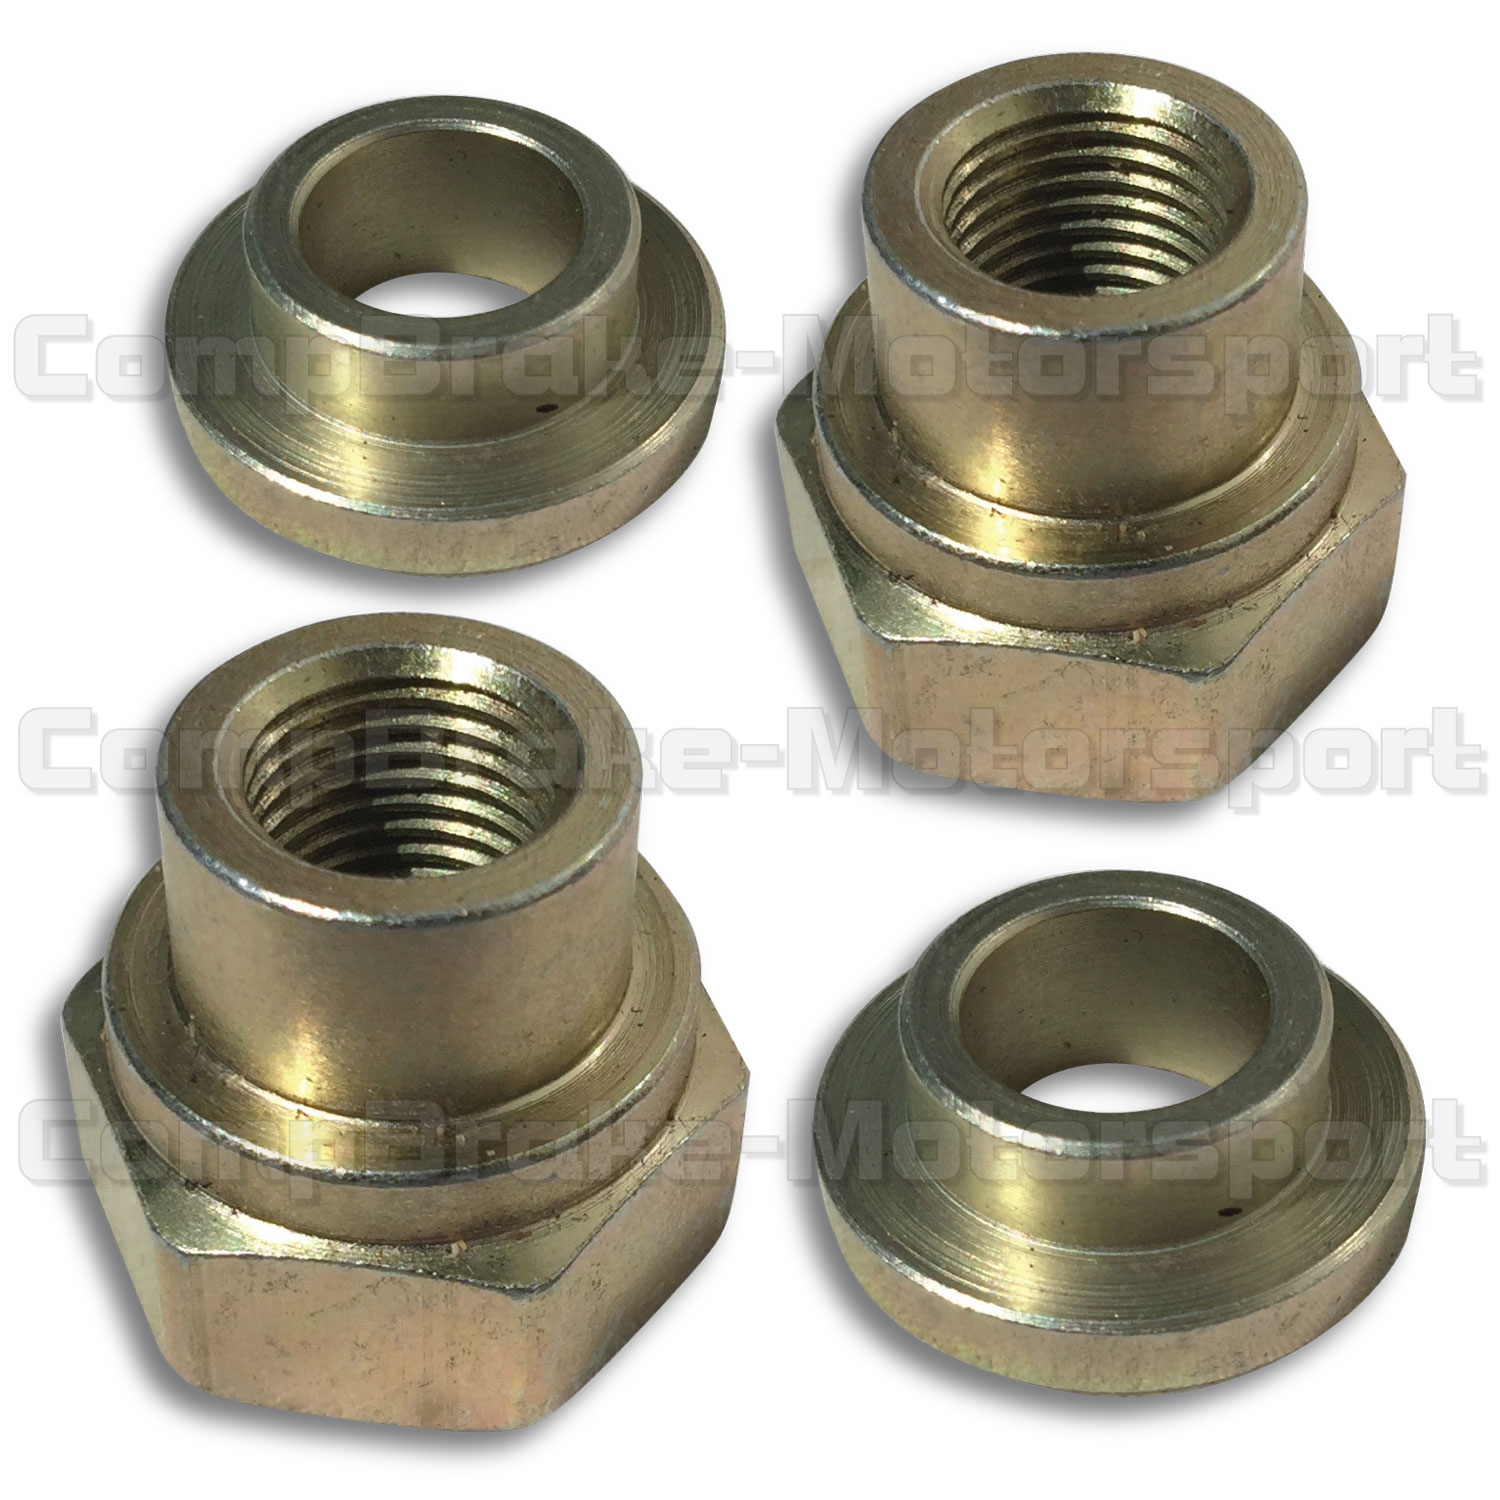 Sleeve Nuts & Washers